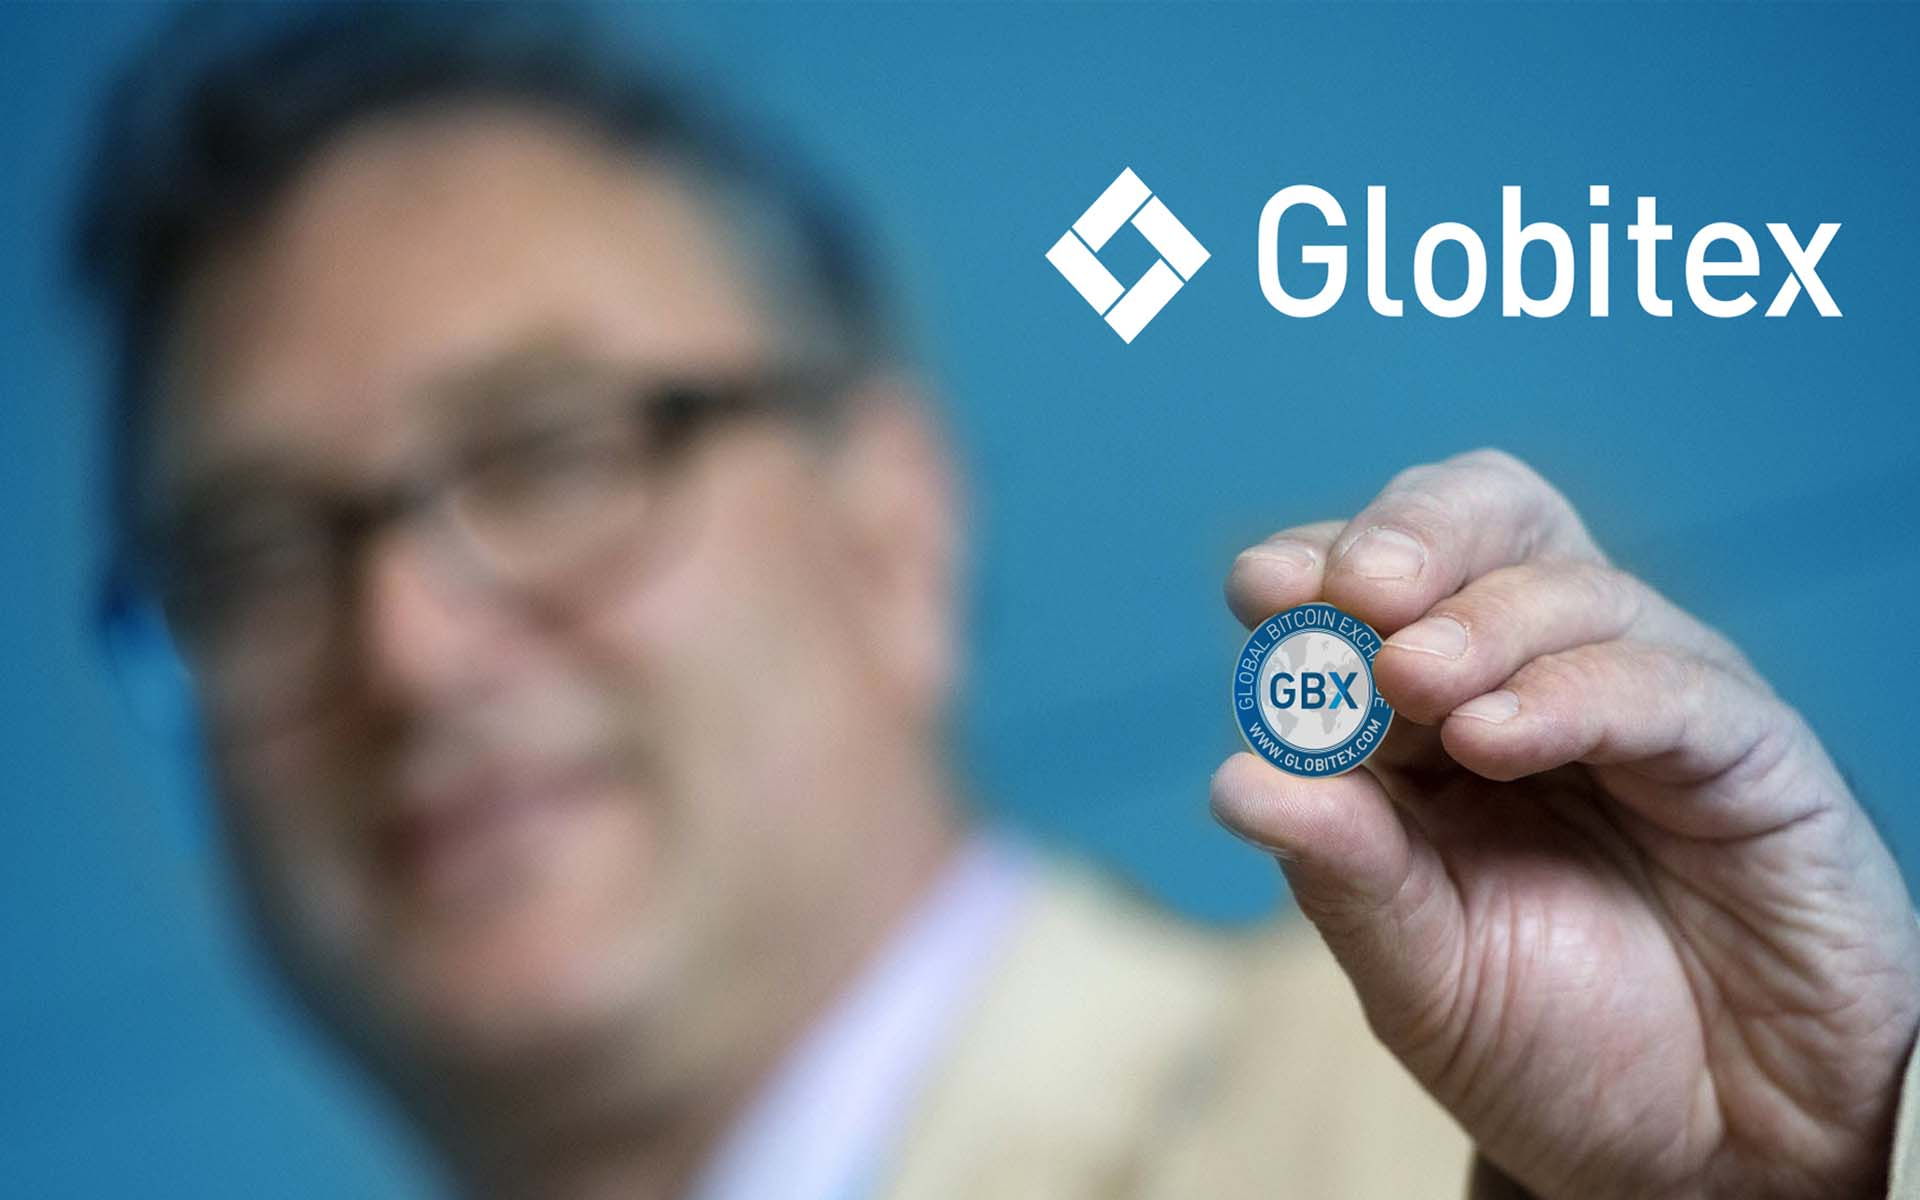 Globitex: Commission-free Bitcoin Cash Trading and Token Sale